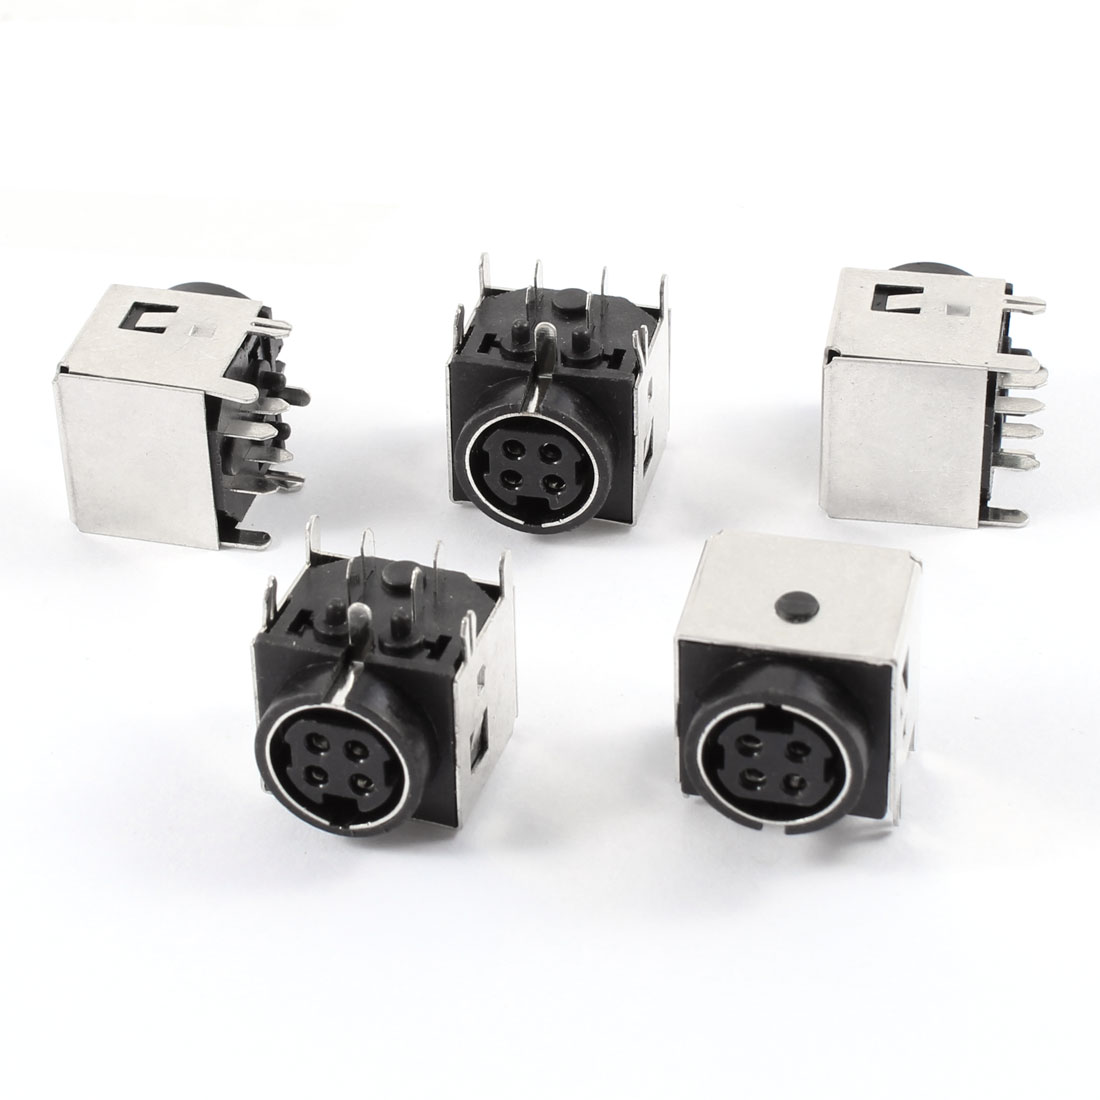 5 Pcs PJ021 DC Power Jack Connector for Alienware 7700 7700M D900T_U